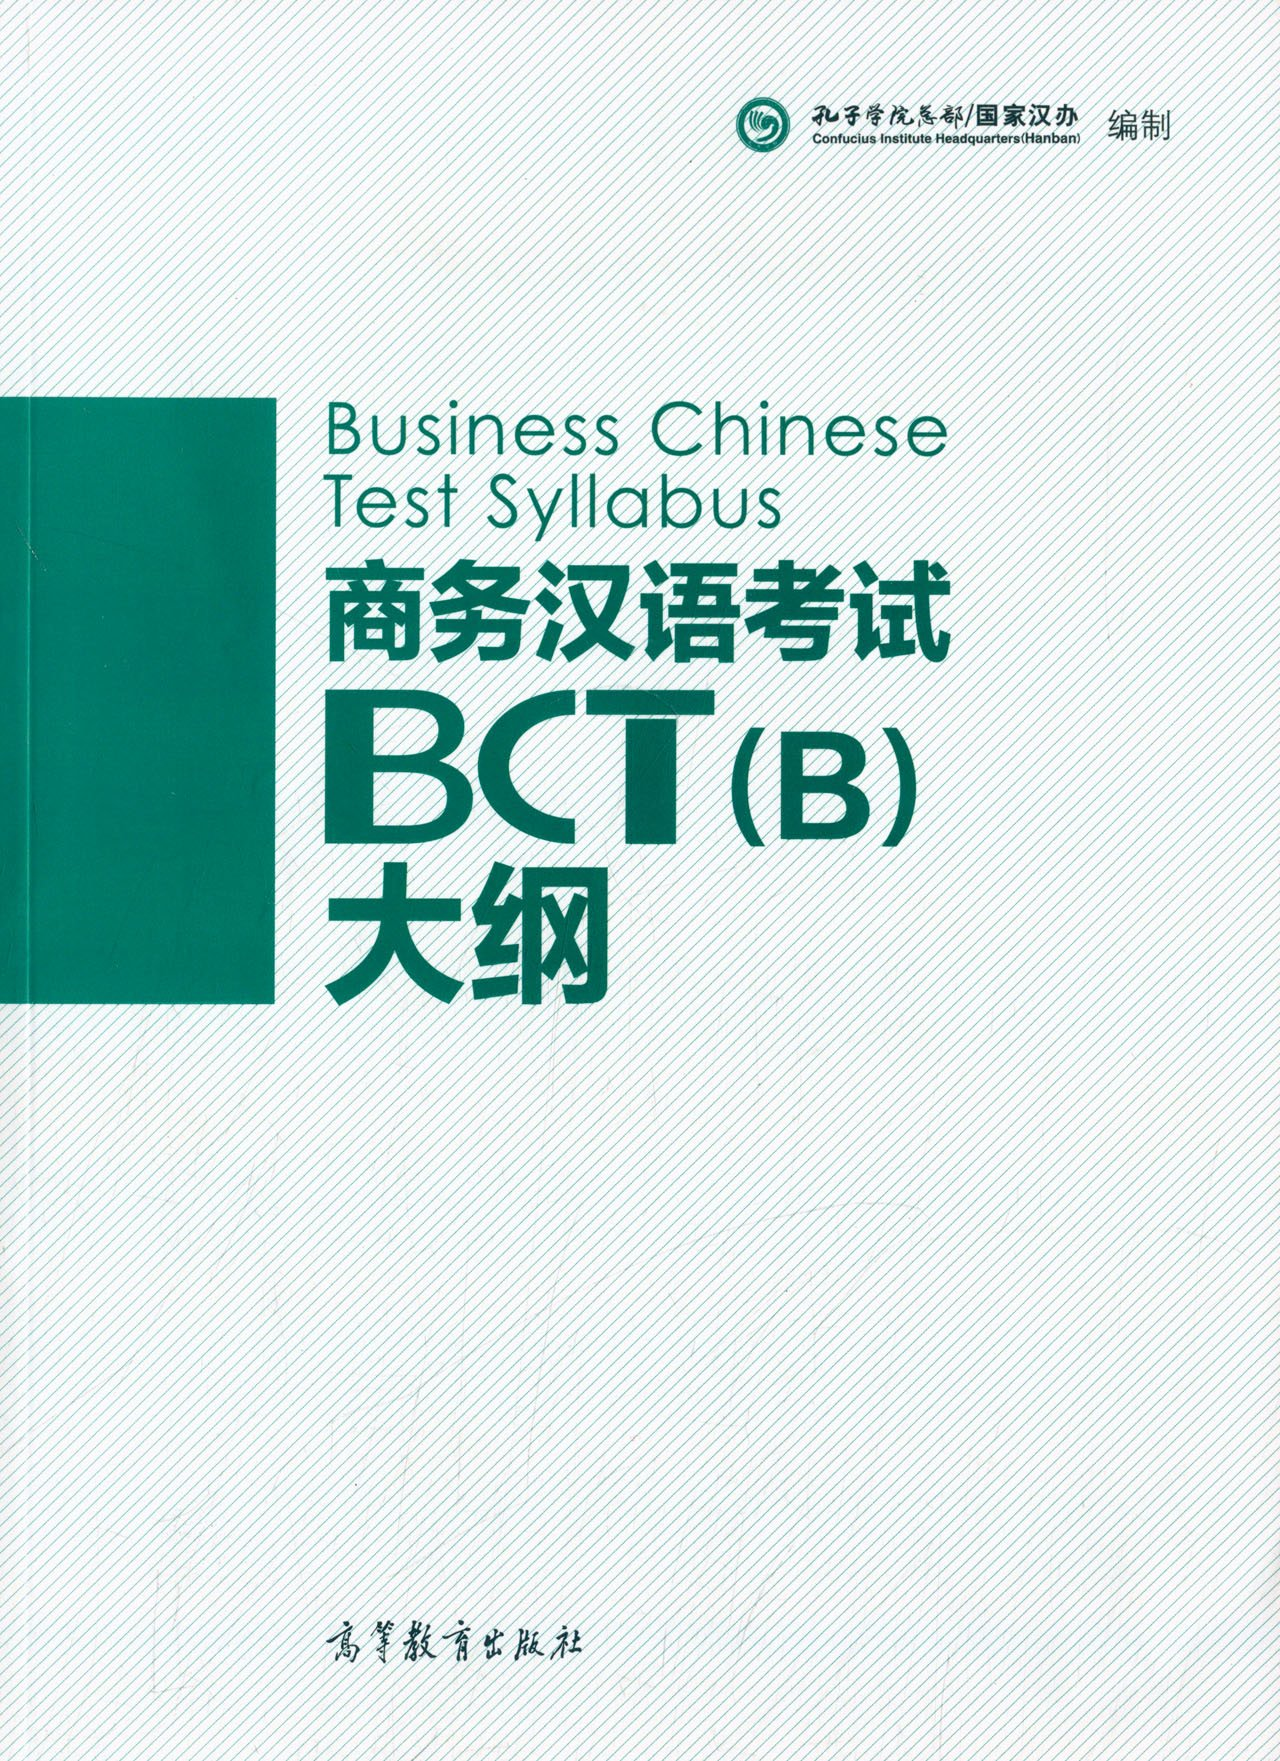 Business Chinese Test (B) - Syllabus